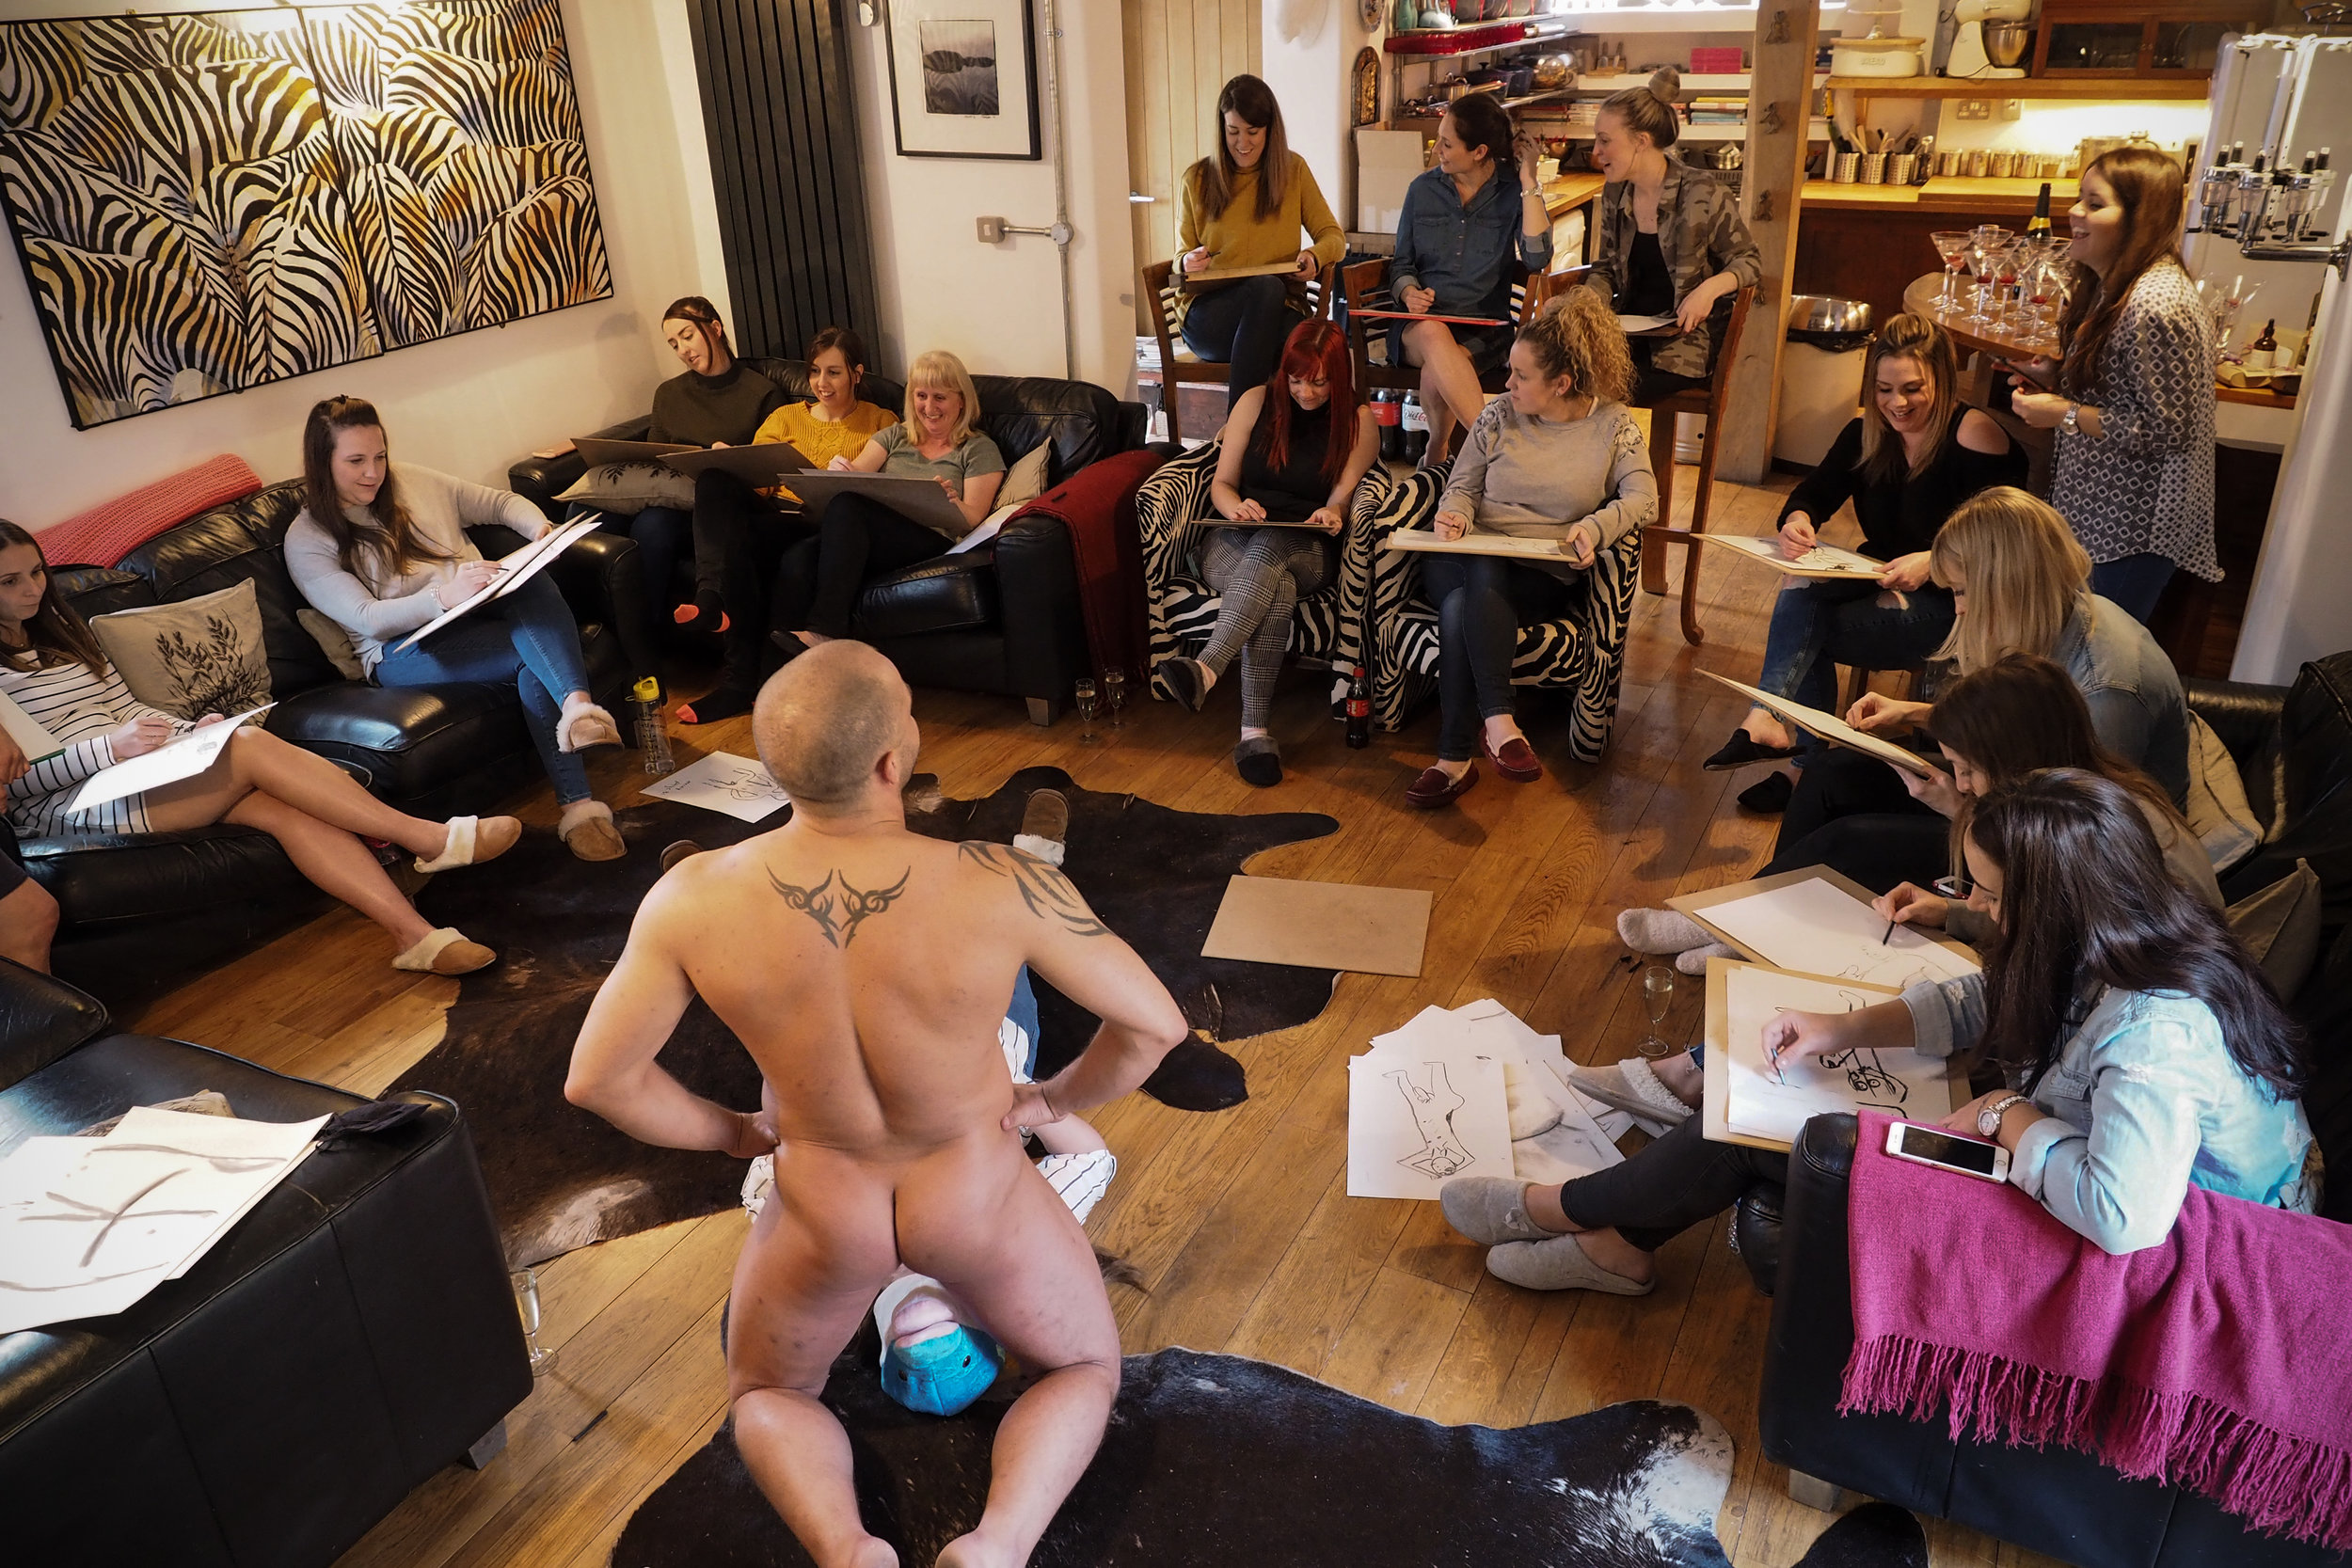 Copy of Life drawing art Class  Life drawing class with a butt naked male model.